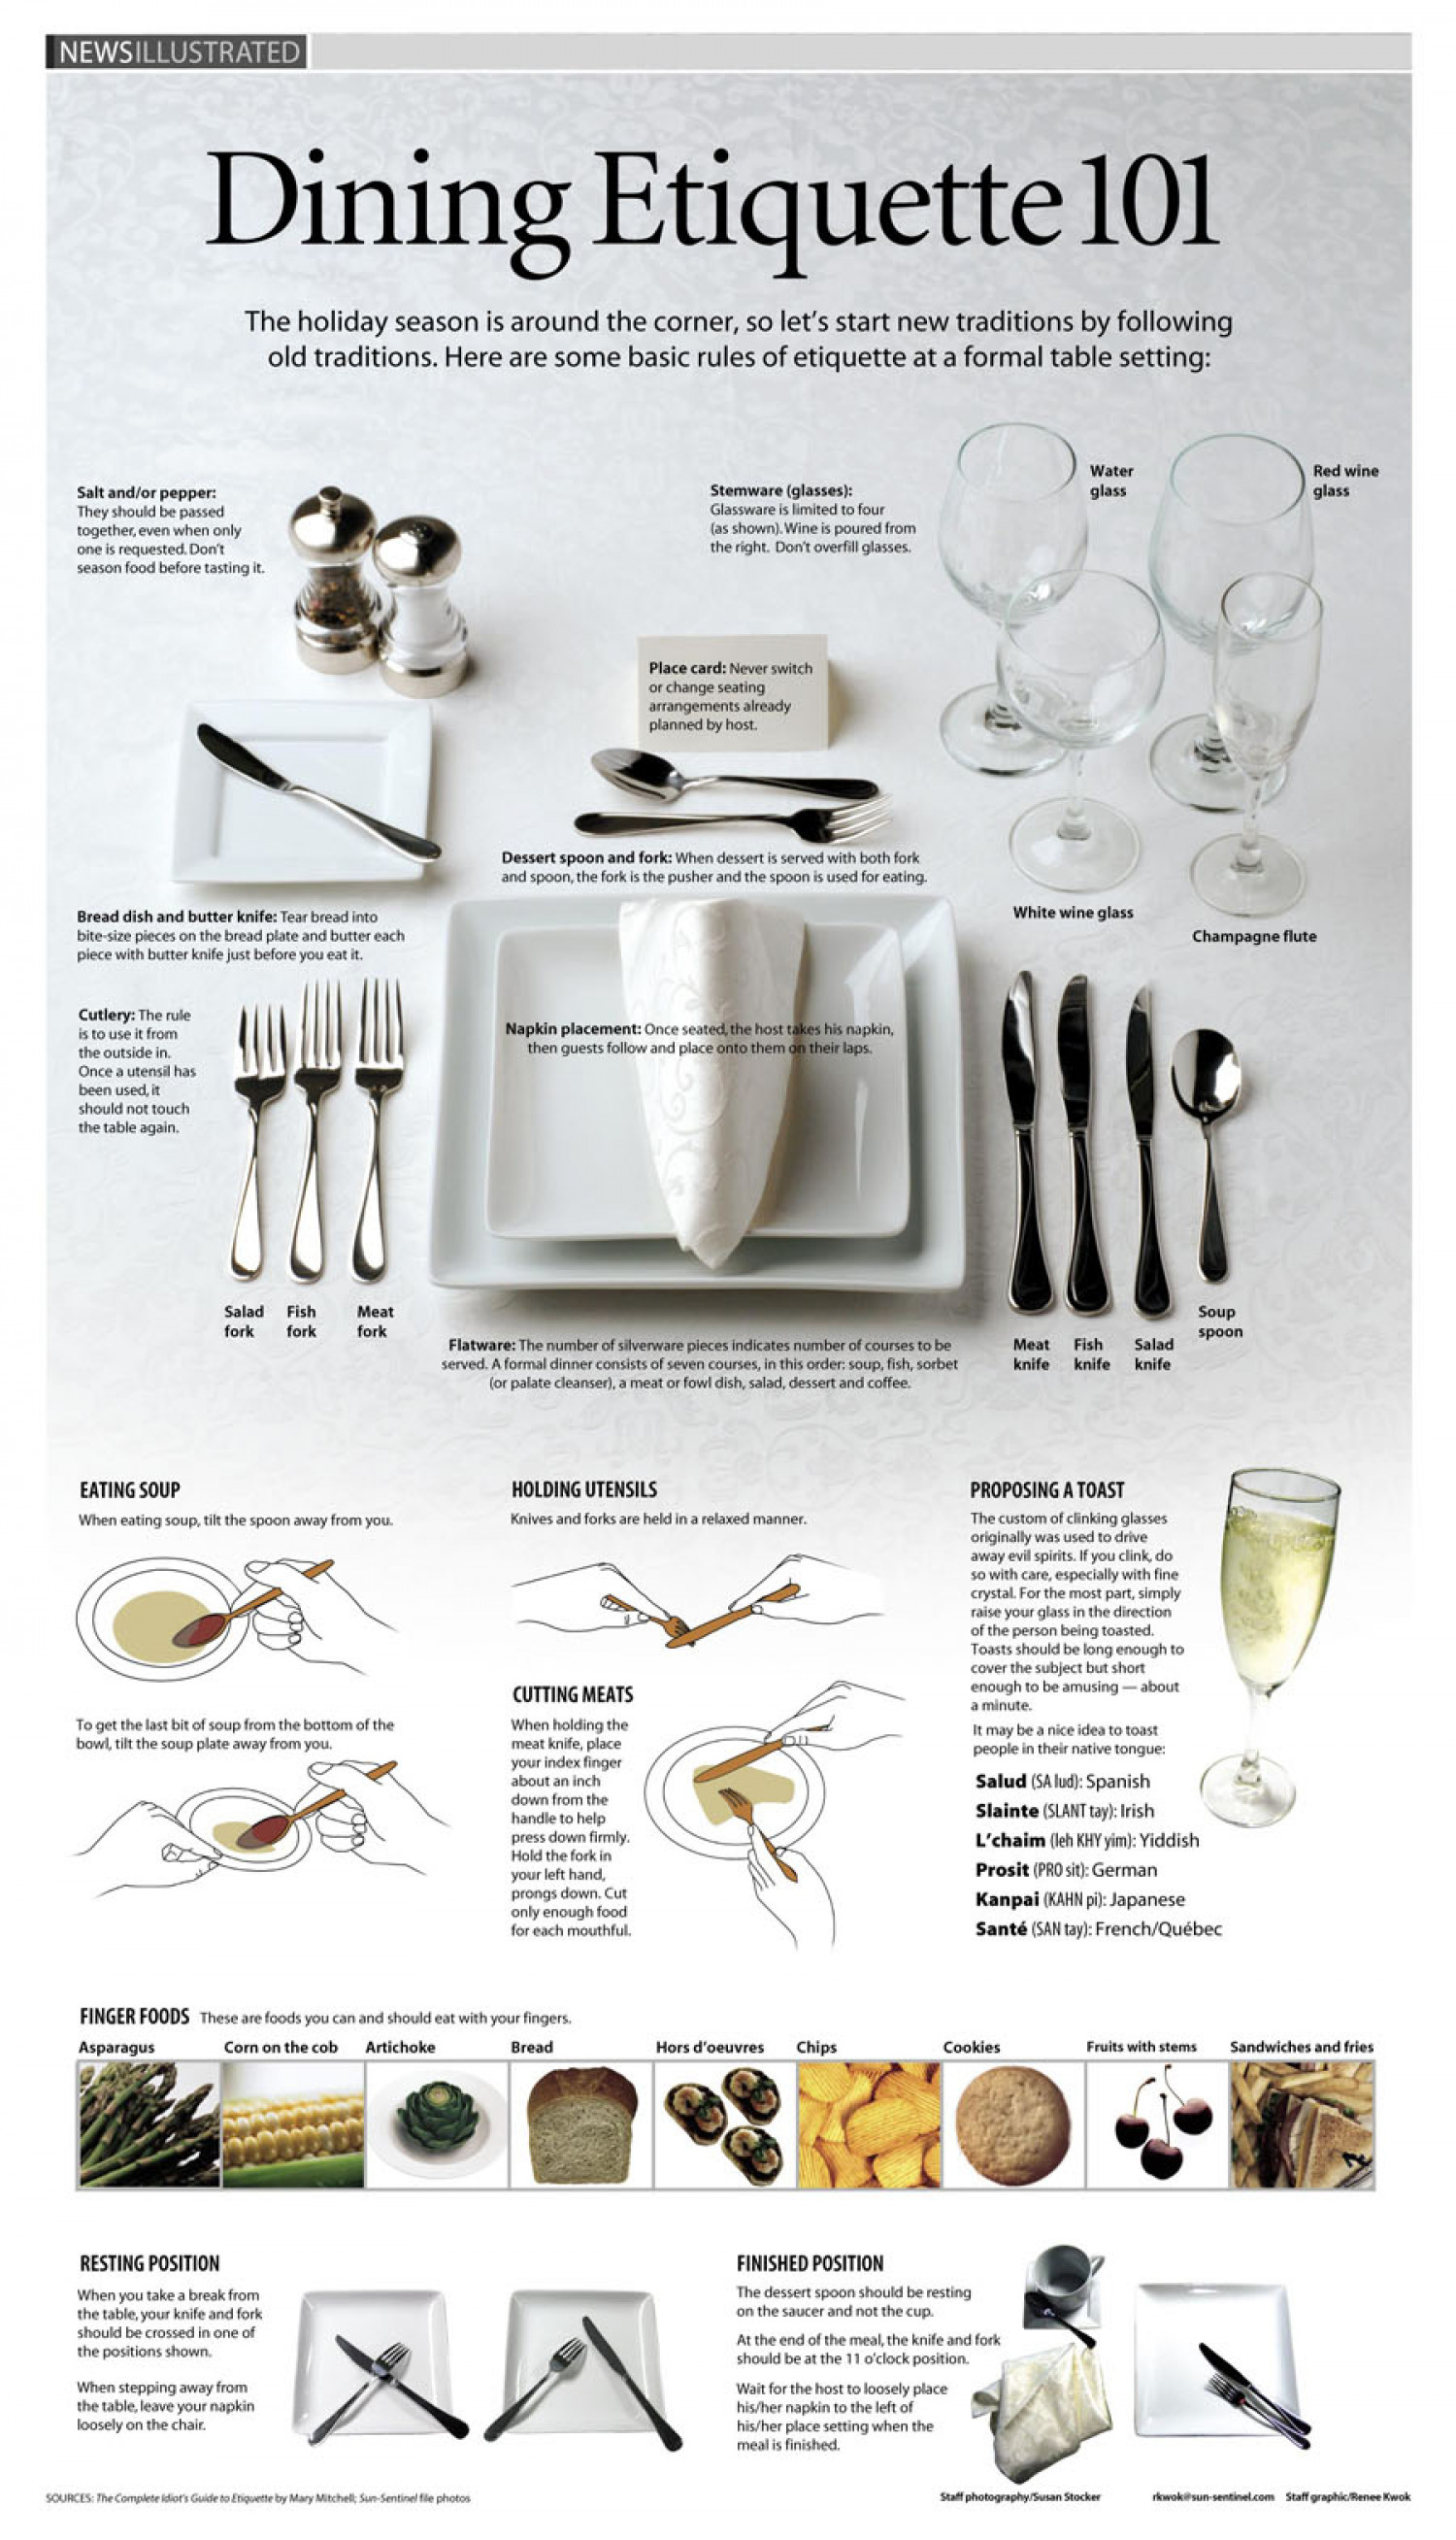 Dining Etiquette 101 Visually : dining etiquette 1015029141b424eew1500 from visual.ly size 1500 x 2616 jpeg 629kB